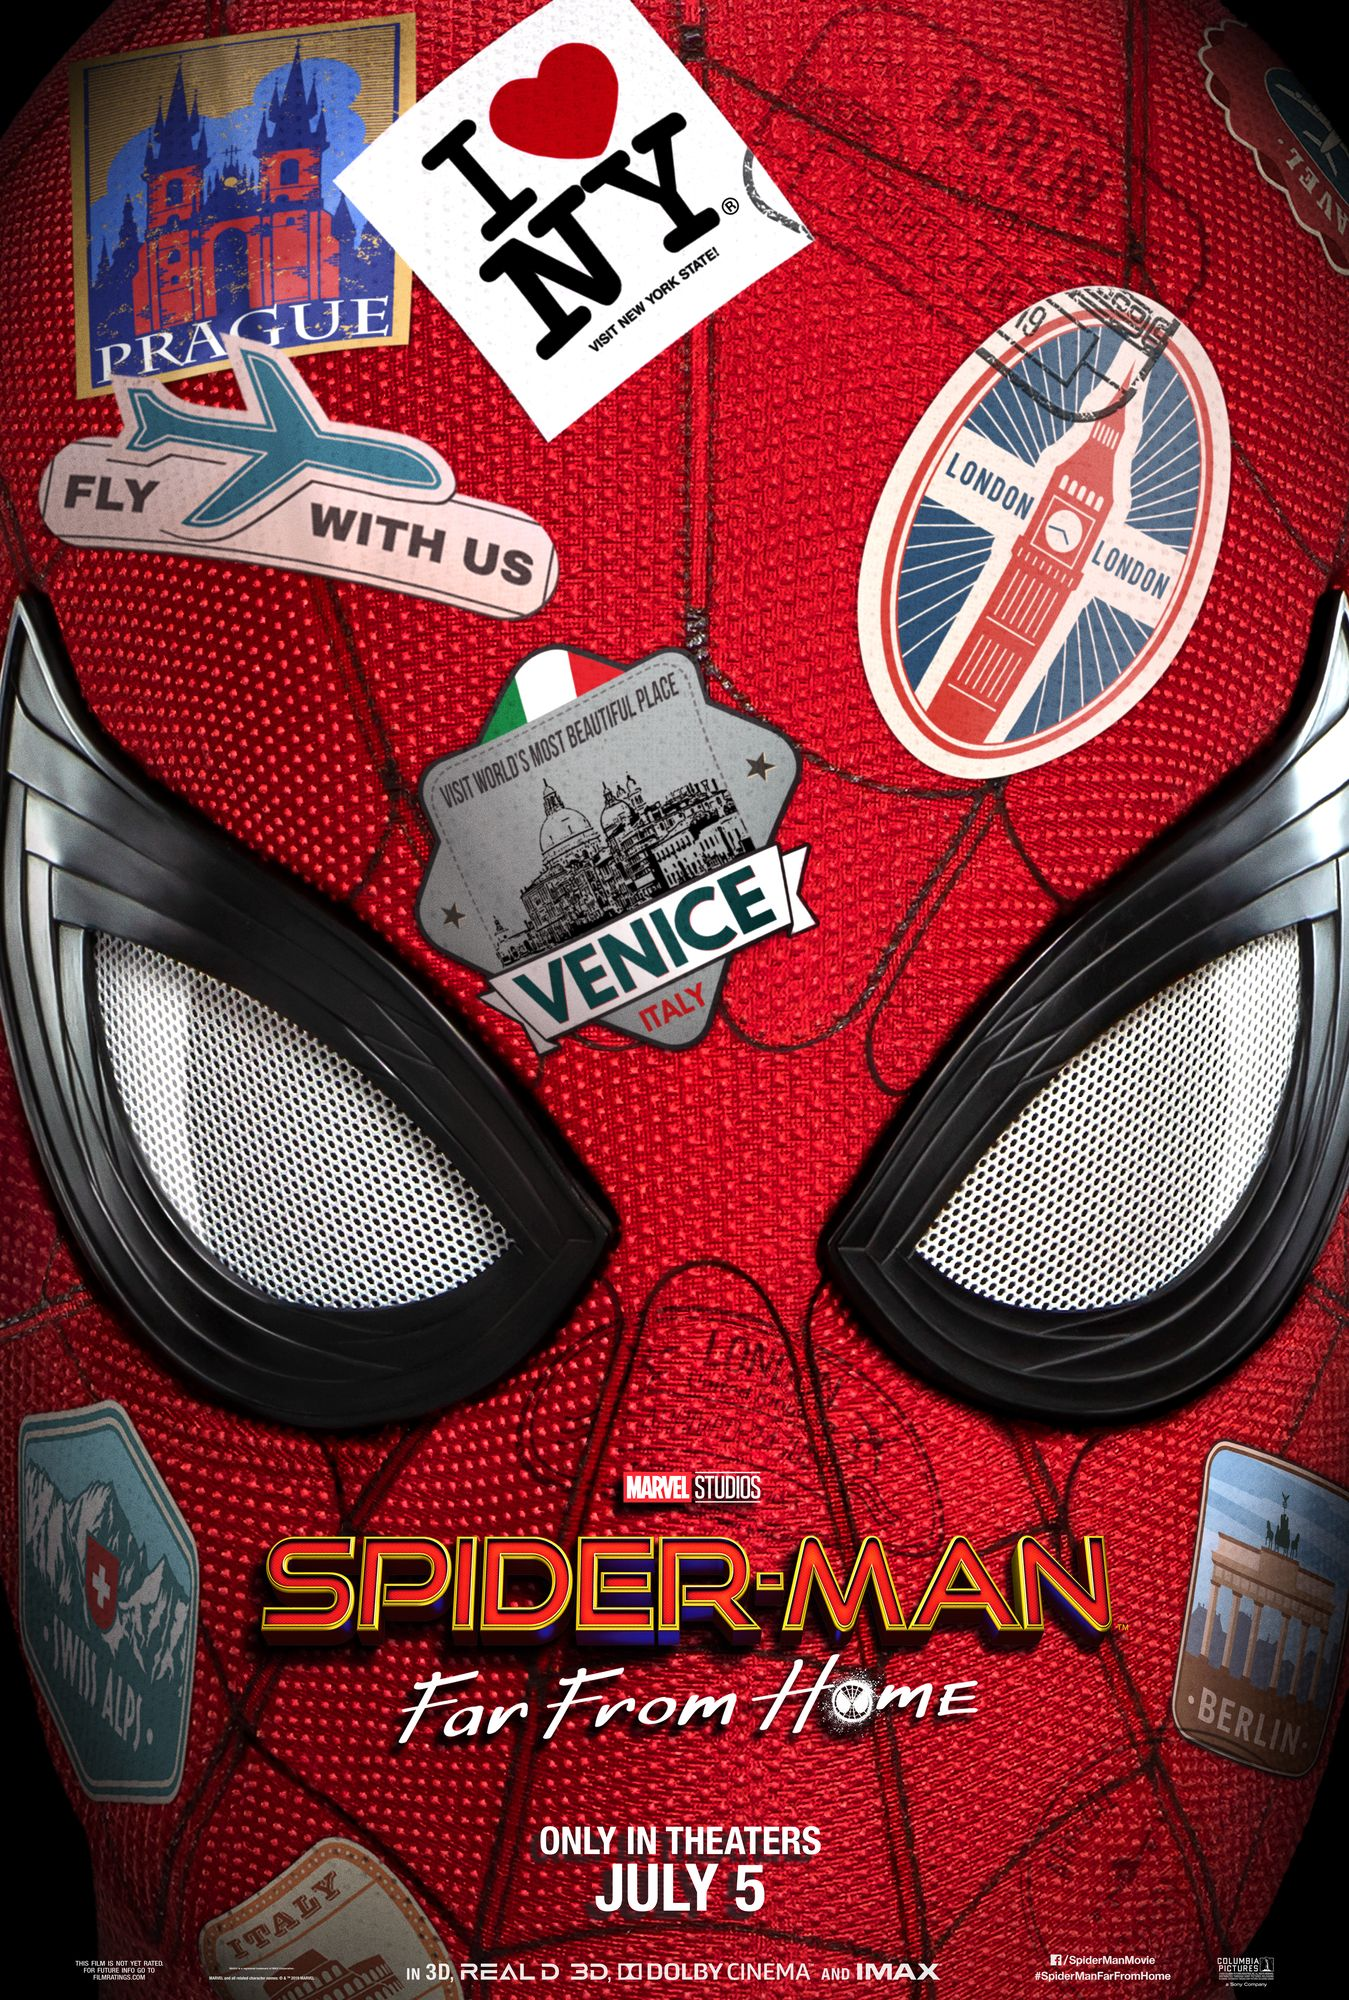 Spider-Man: Far From Home (2019) | Last MCU Phase 3 Movie